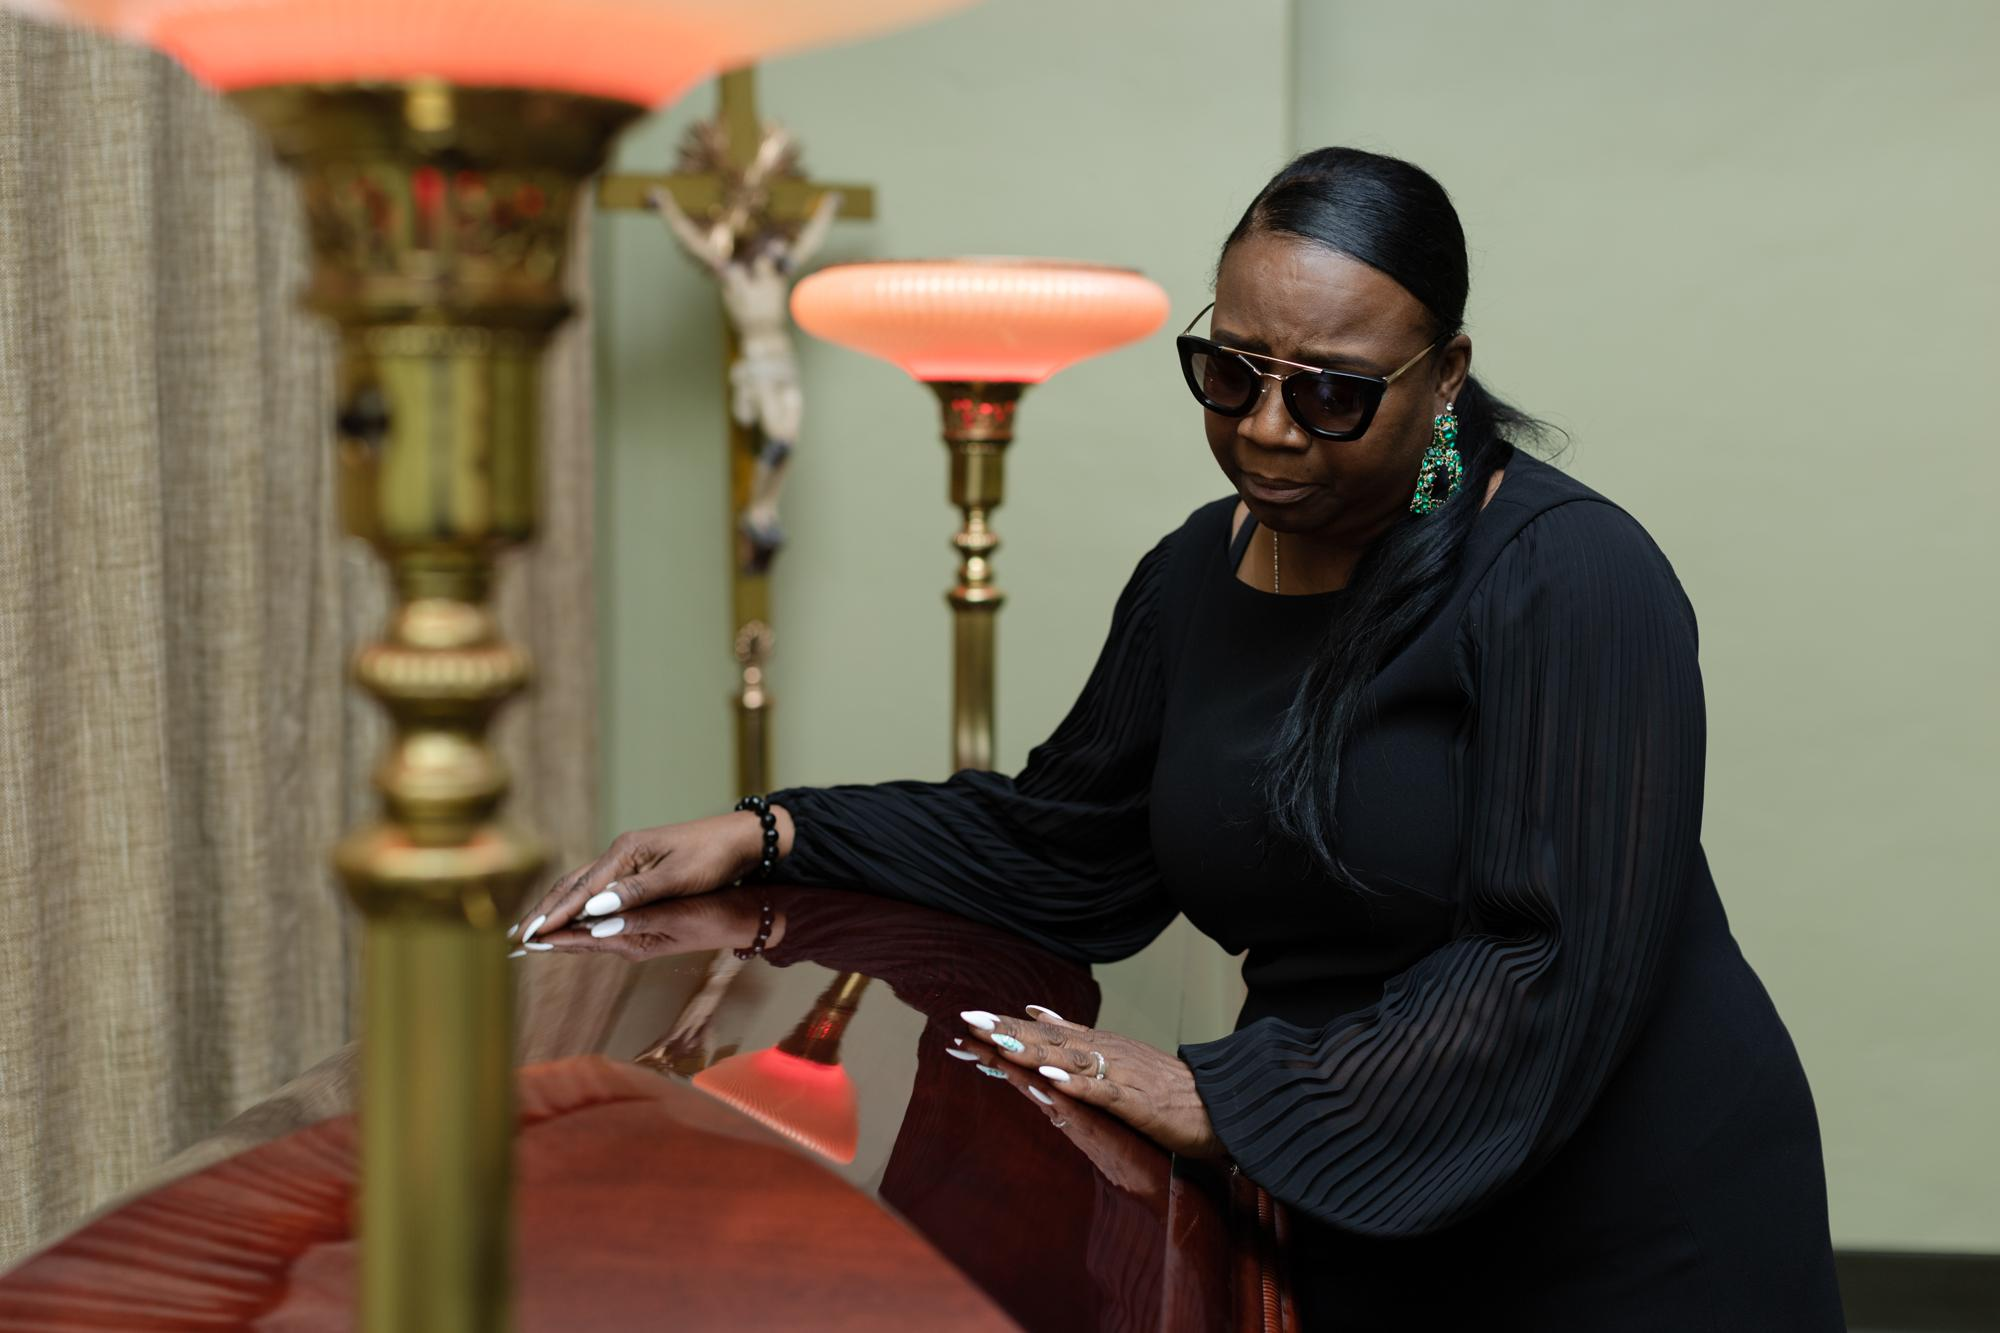 Day #4. Ms. Gail Roberson mourns the loss of her son at a chapel at Duggan's Funeral Service on Friday, March 20, 2020, in San Francisco, Calif. When one loses loved ones, family and friends support is essential, but in an attempt to stop the further spread of COVID-19, Duggan's Funeral Service in San Francisco has had to limit funeral services to less than 10 people, and only three visitors can come inside the funeral home at once to make arrangements and attend a wake. - On assignment for San Francisco Chronicle.